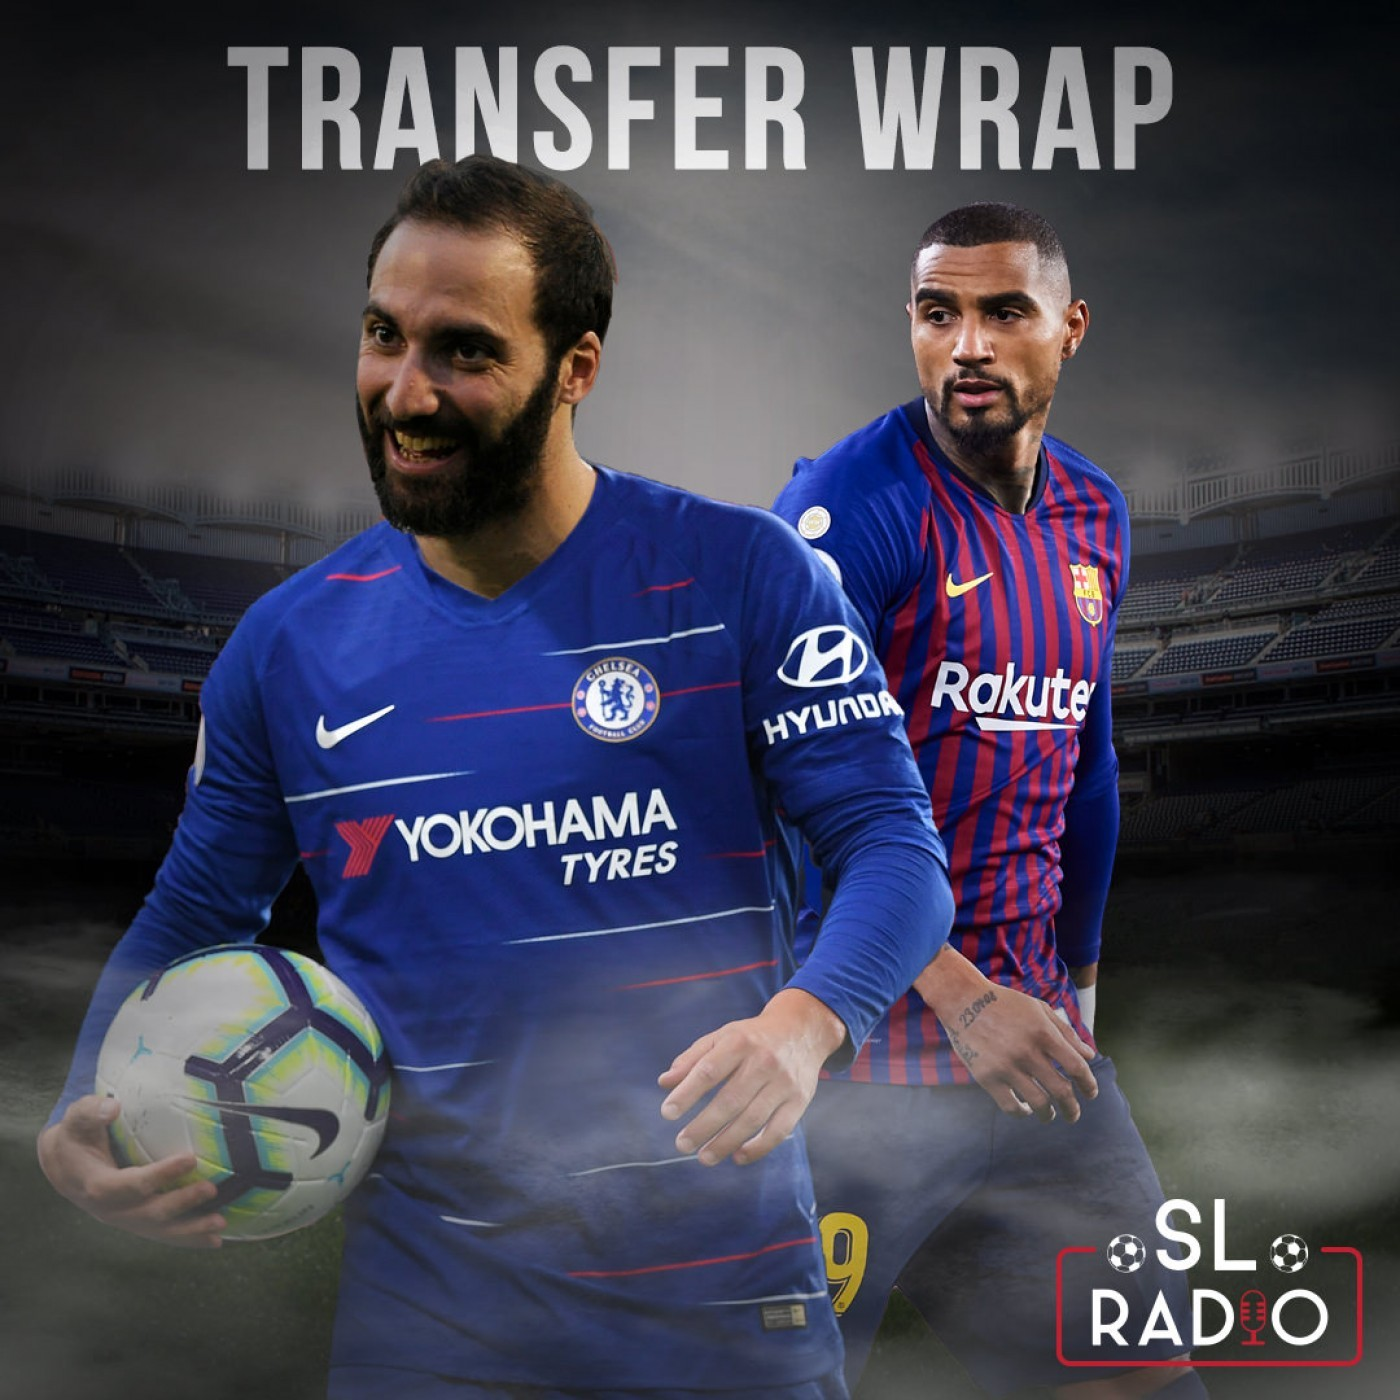 Transfer Wrap Ep 28 - Cup Opponents Send Chiefs A Strong Message